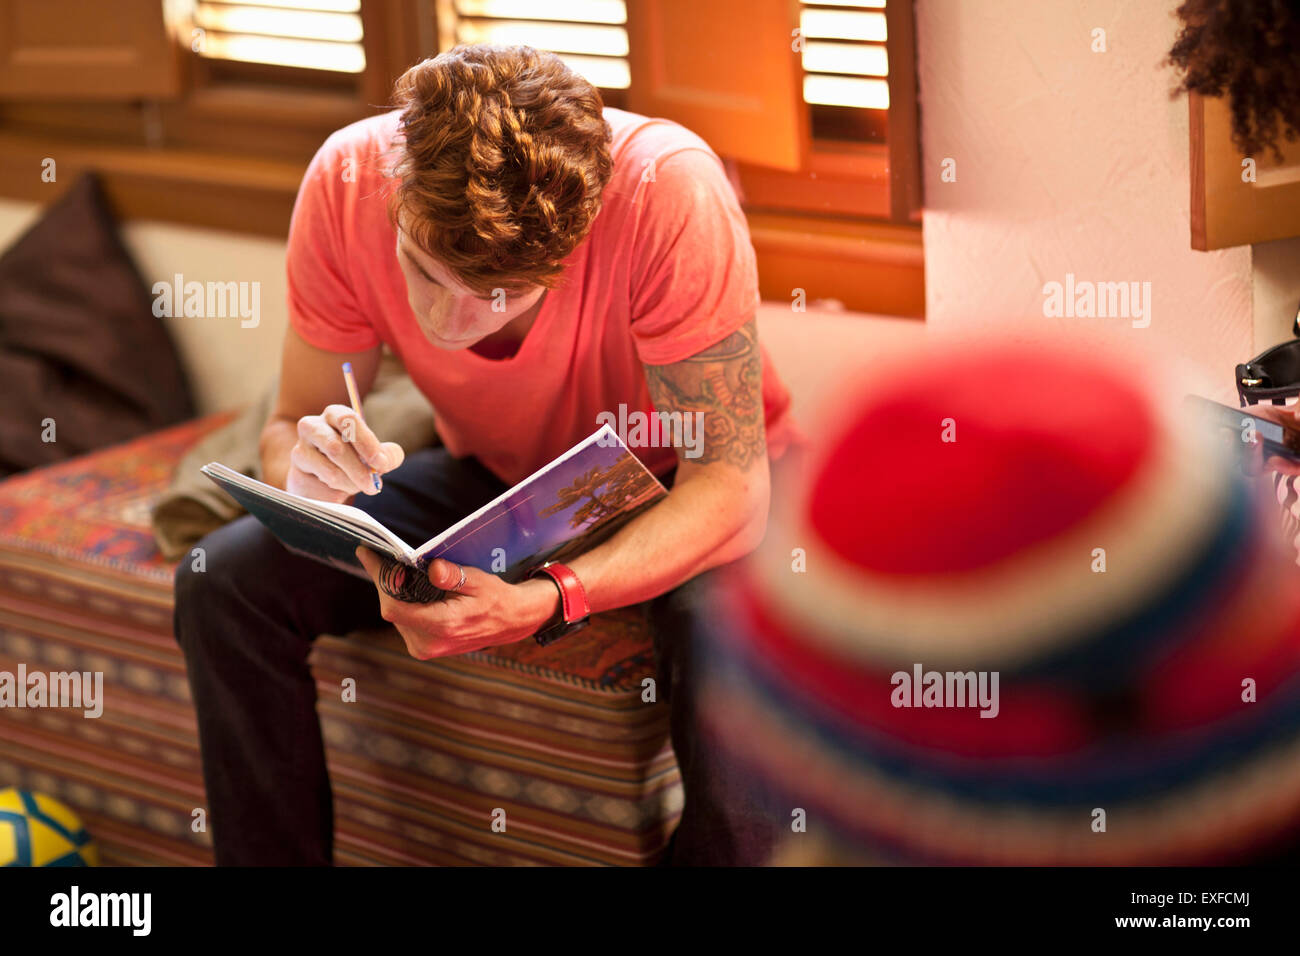 Student studying in living room - Stock Image